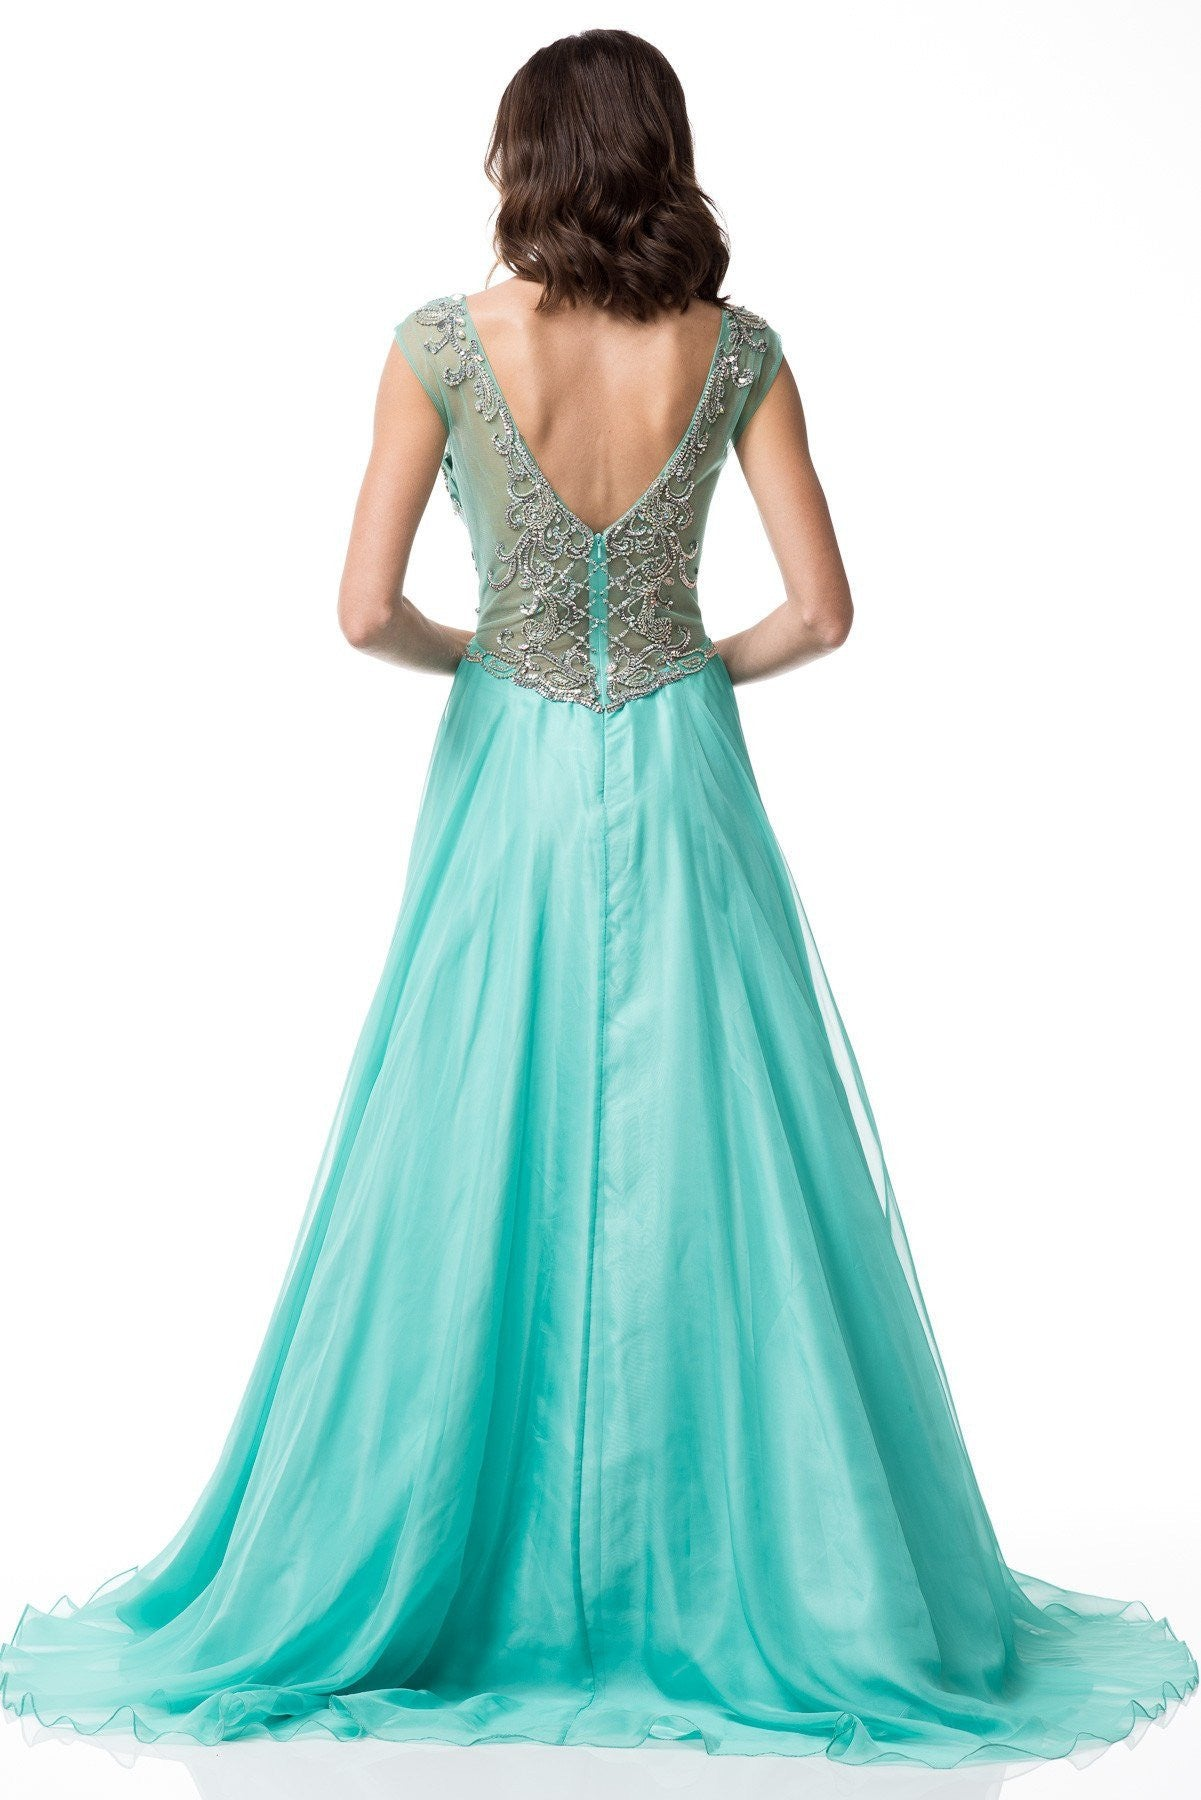 Sexy 2017 formal dress sale Bc#MD81474 - Simply Fab Dress